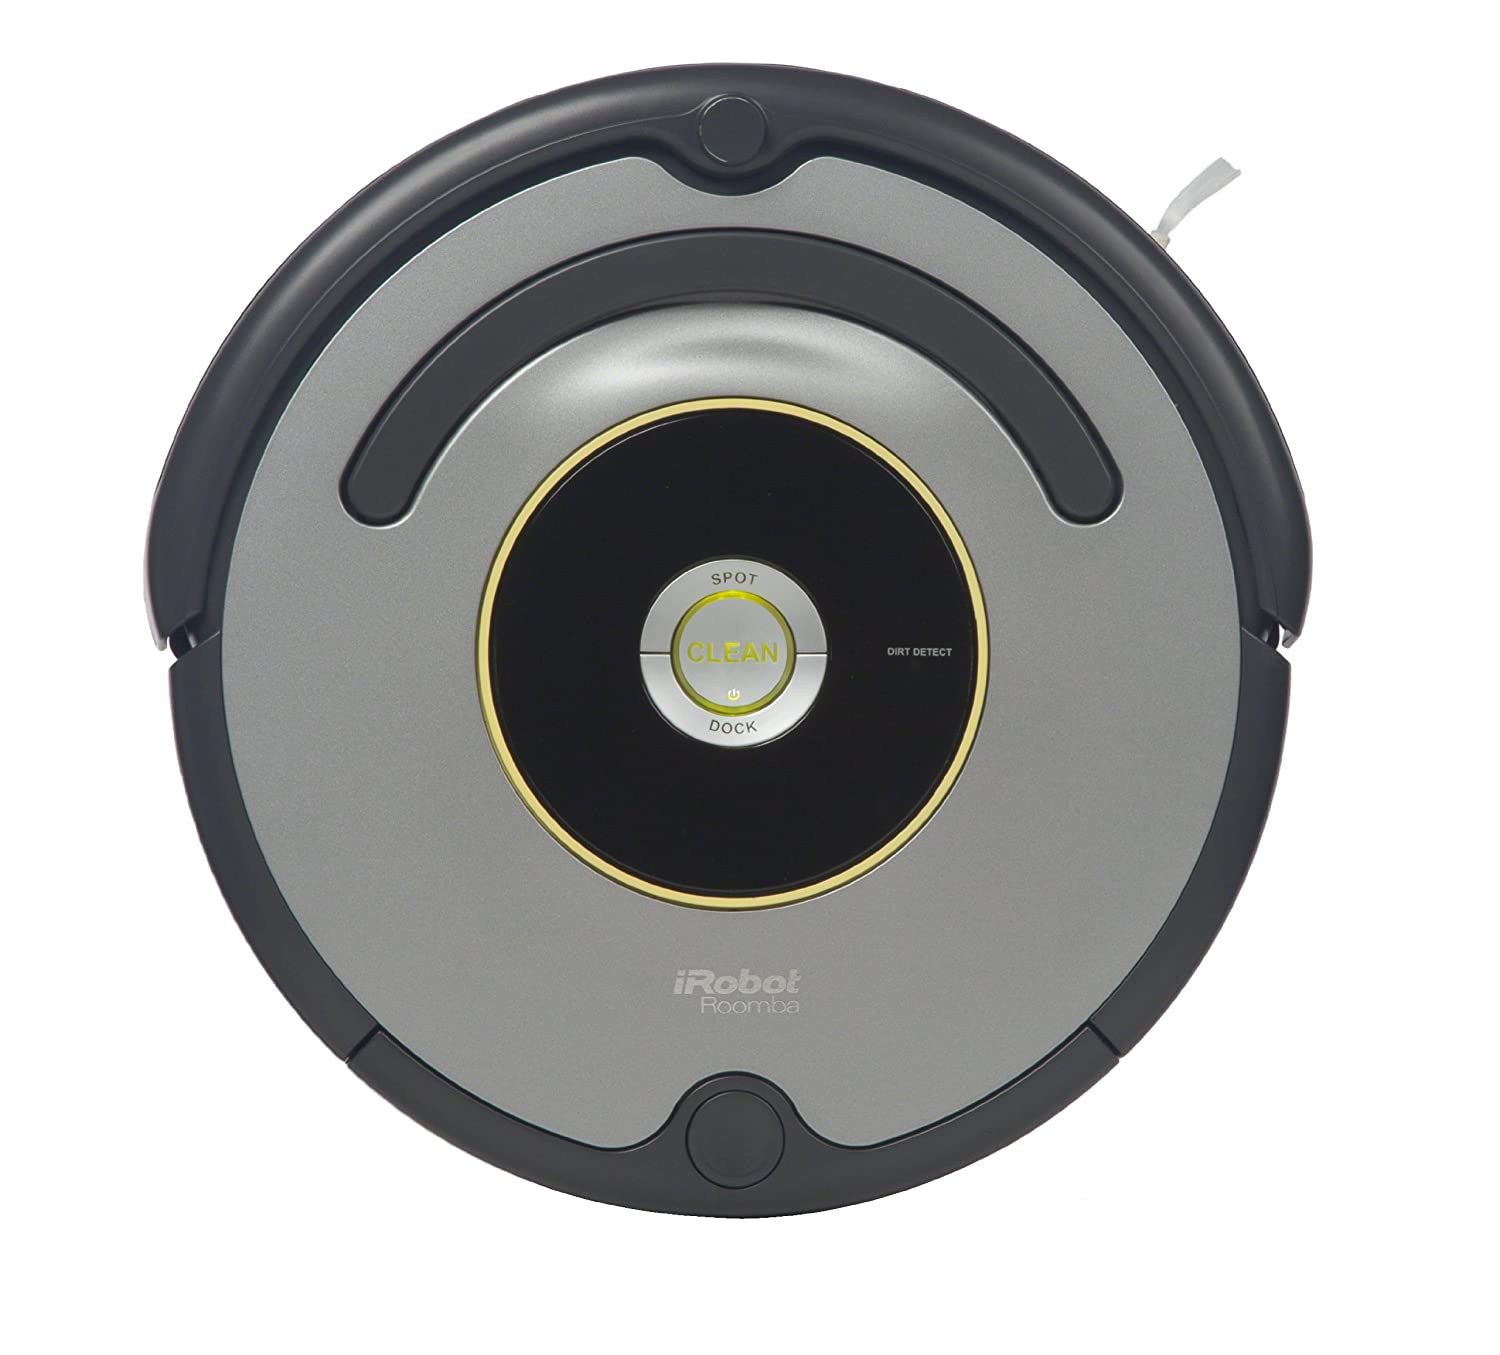 iRobot Roomba 630 Black Friday deal 2019